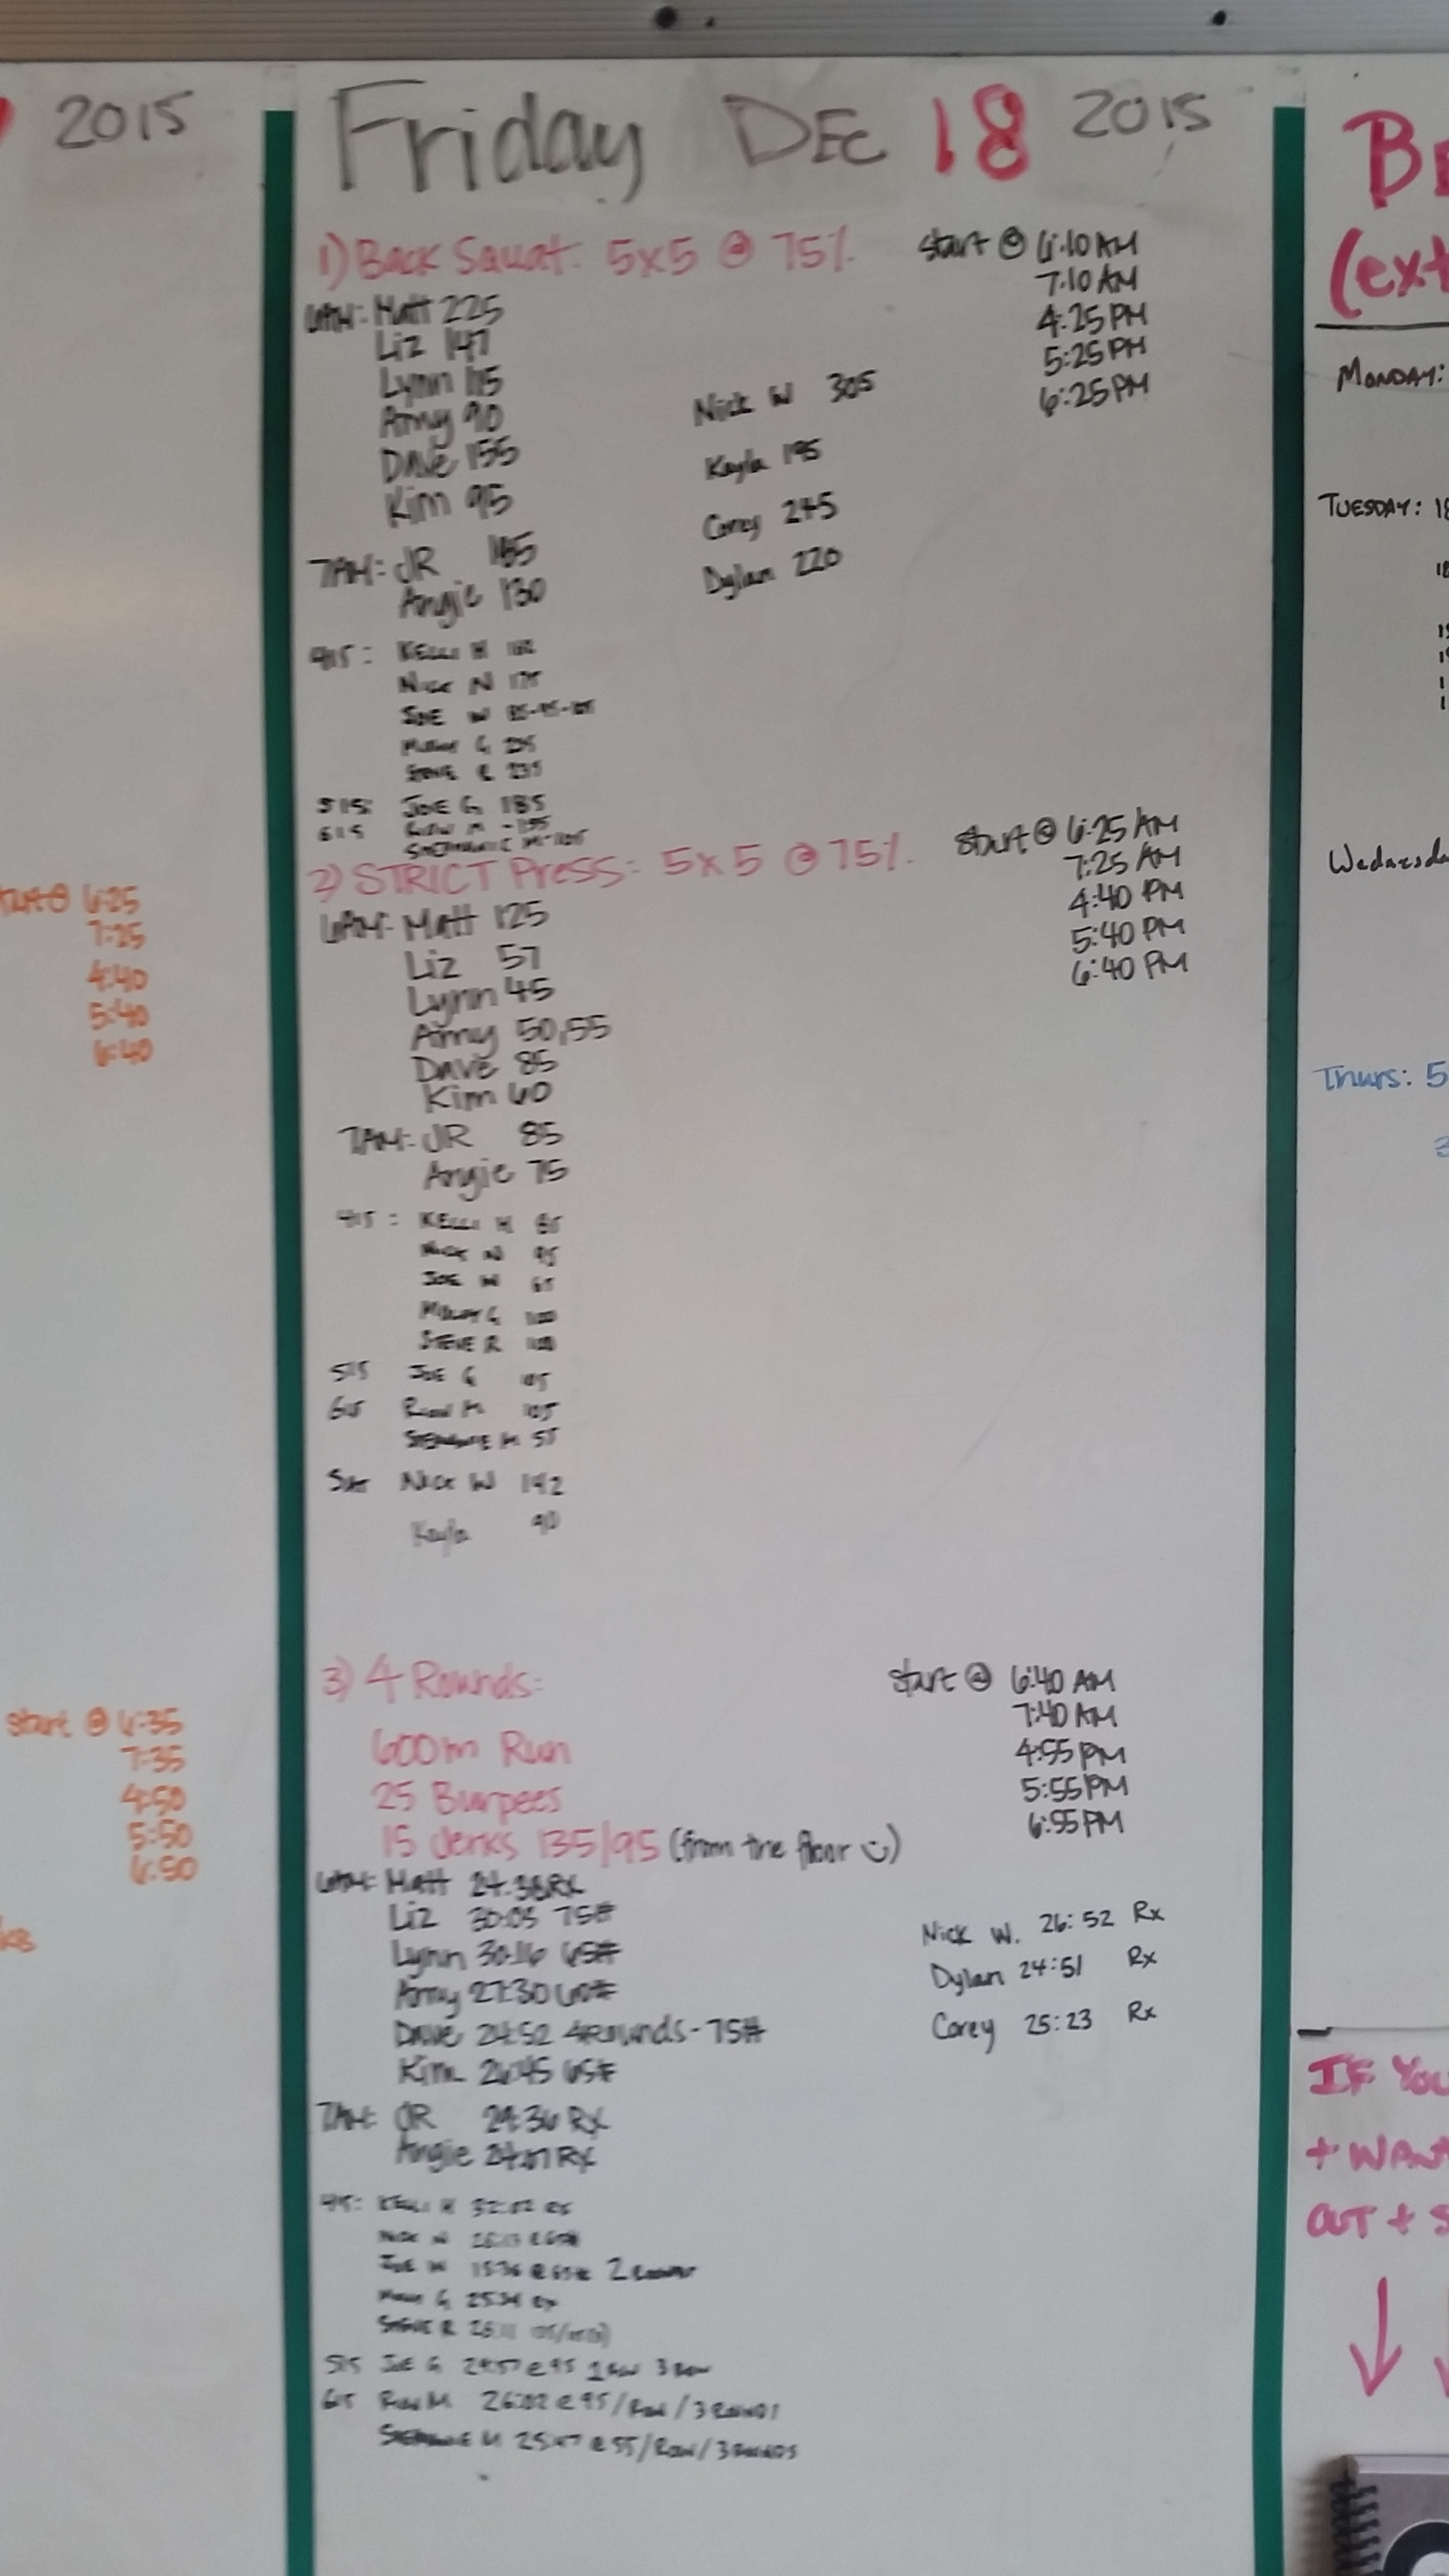 20151218 CrossFit Craft Back Squat Strict Press Run Burpees Jerks